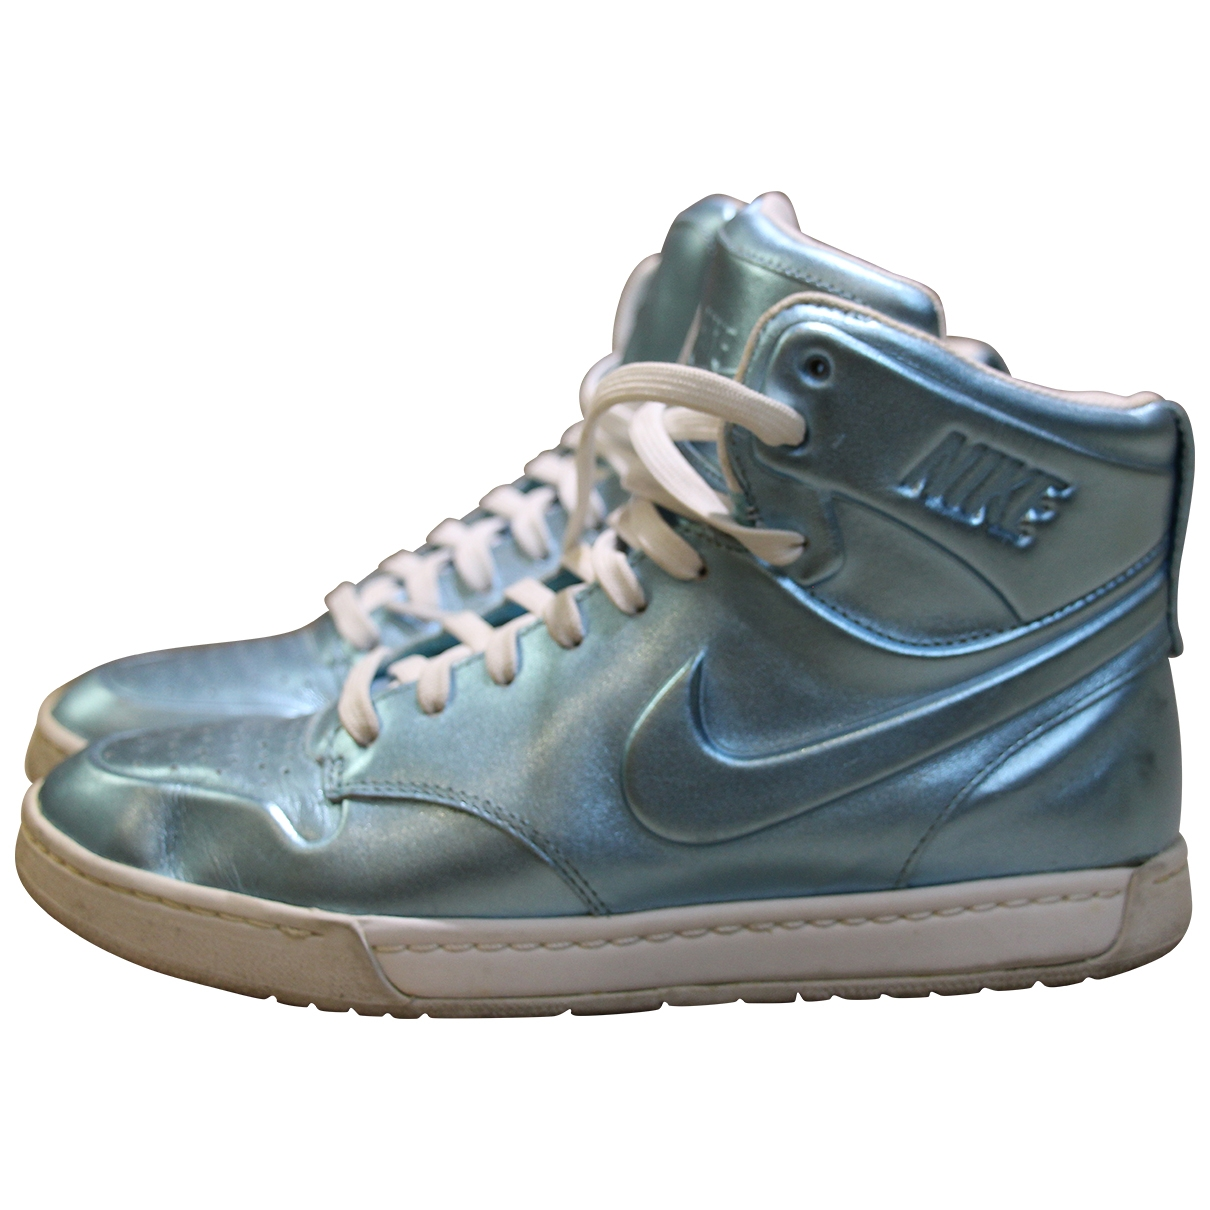 Nike Dunk Sky Metallic Leather Trainers for Women 7 US